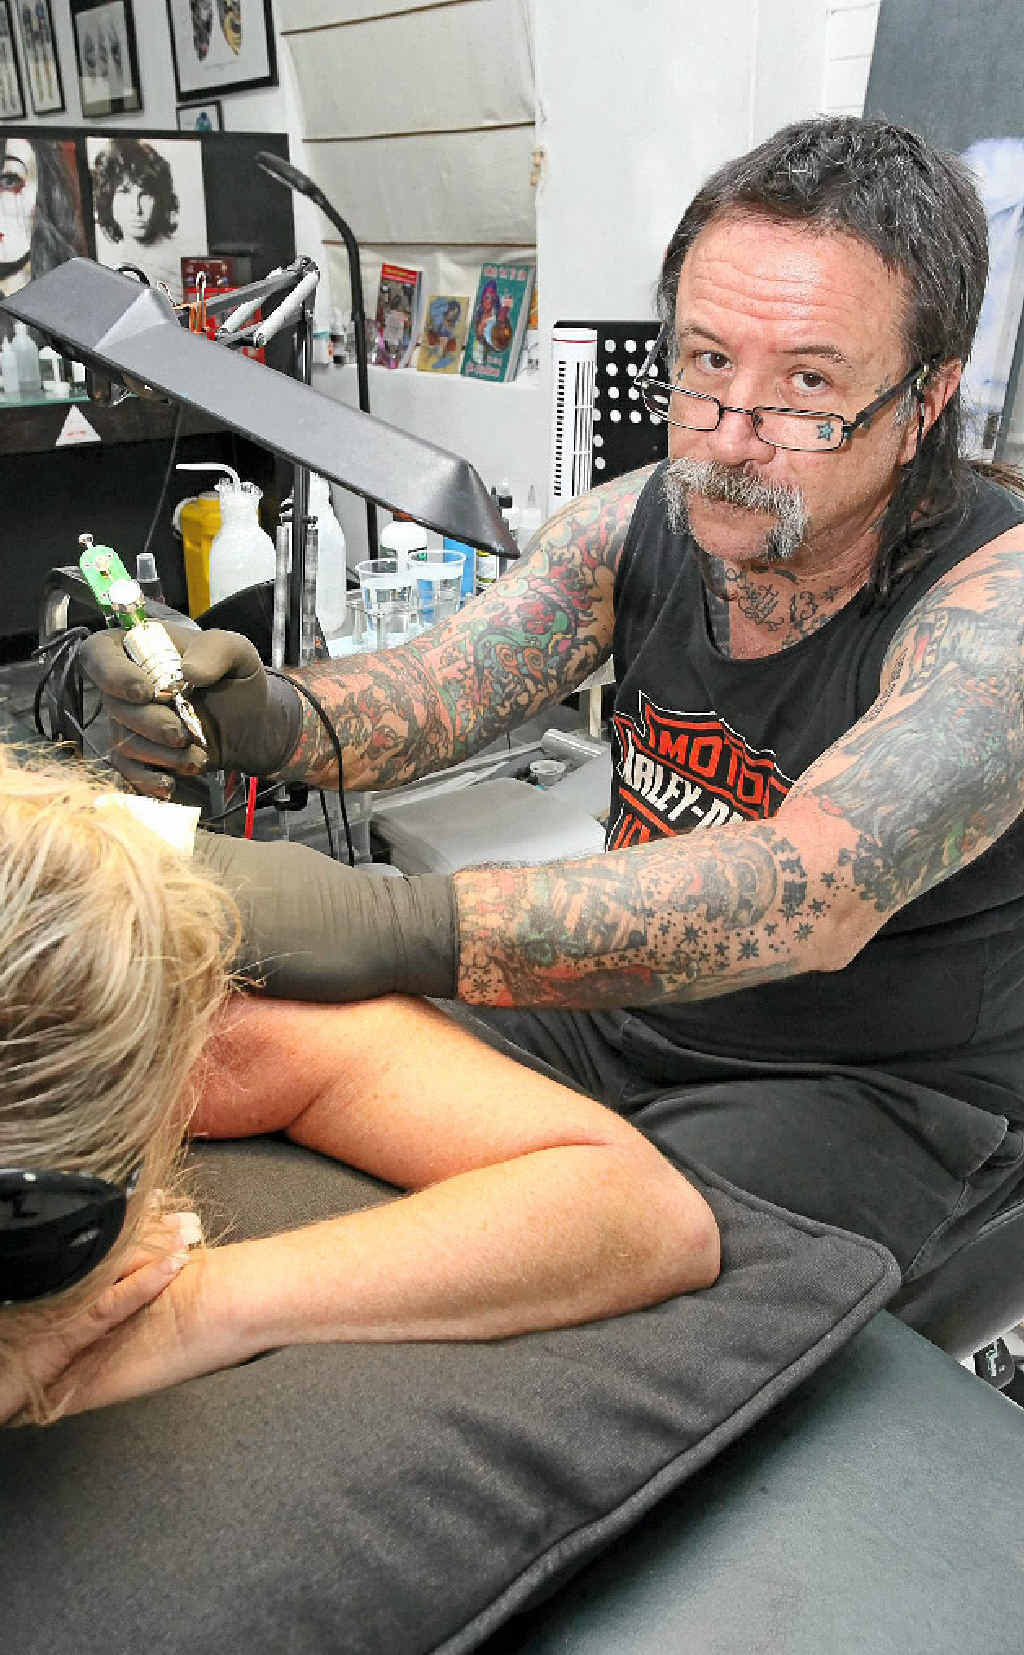 BAD FOR BUSINESS: Angelo Garozzo of Caloundra Tattoo Studios may have to close the doors on his business if the current VLAD laws stay in effect.